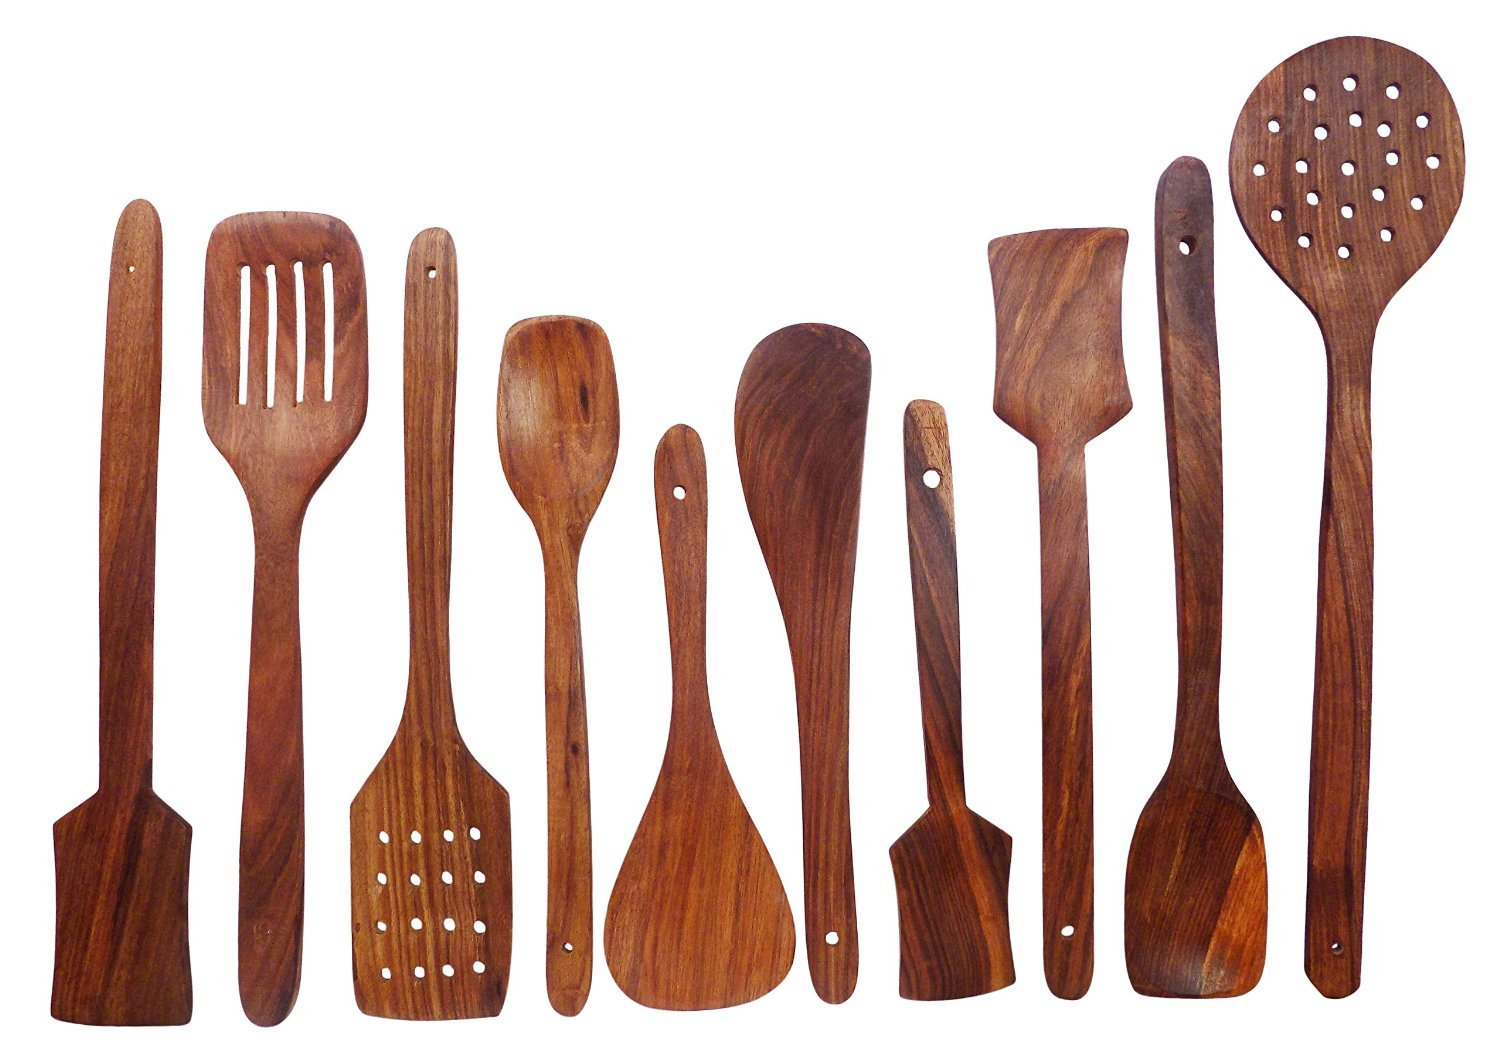 Crafts'man Pure Sheesham Wooden Kitchen Spoon Set of 10 pc. Cookware Accessor...